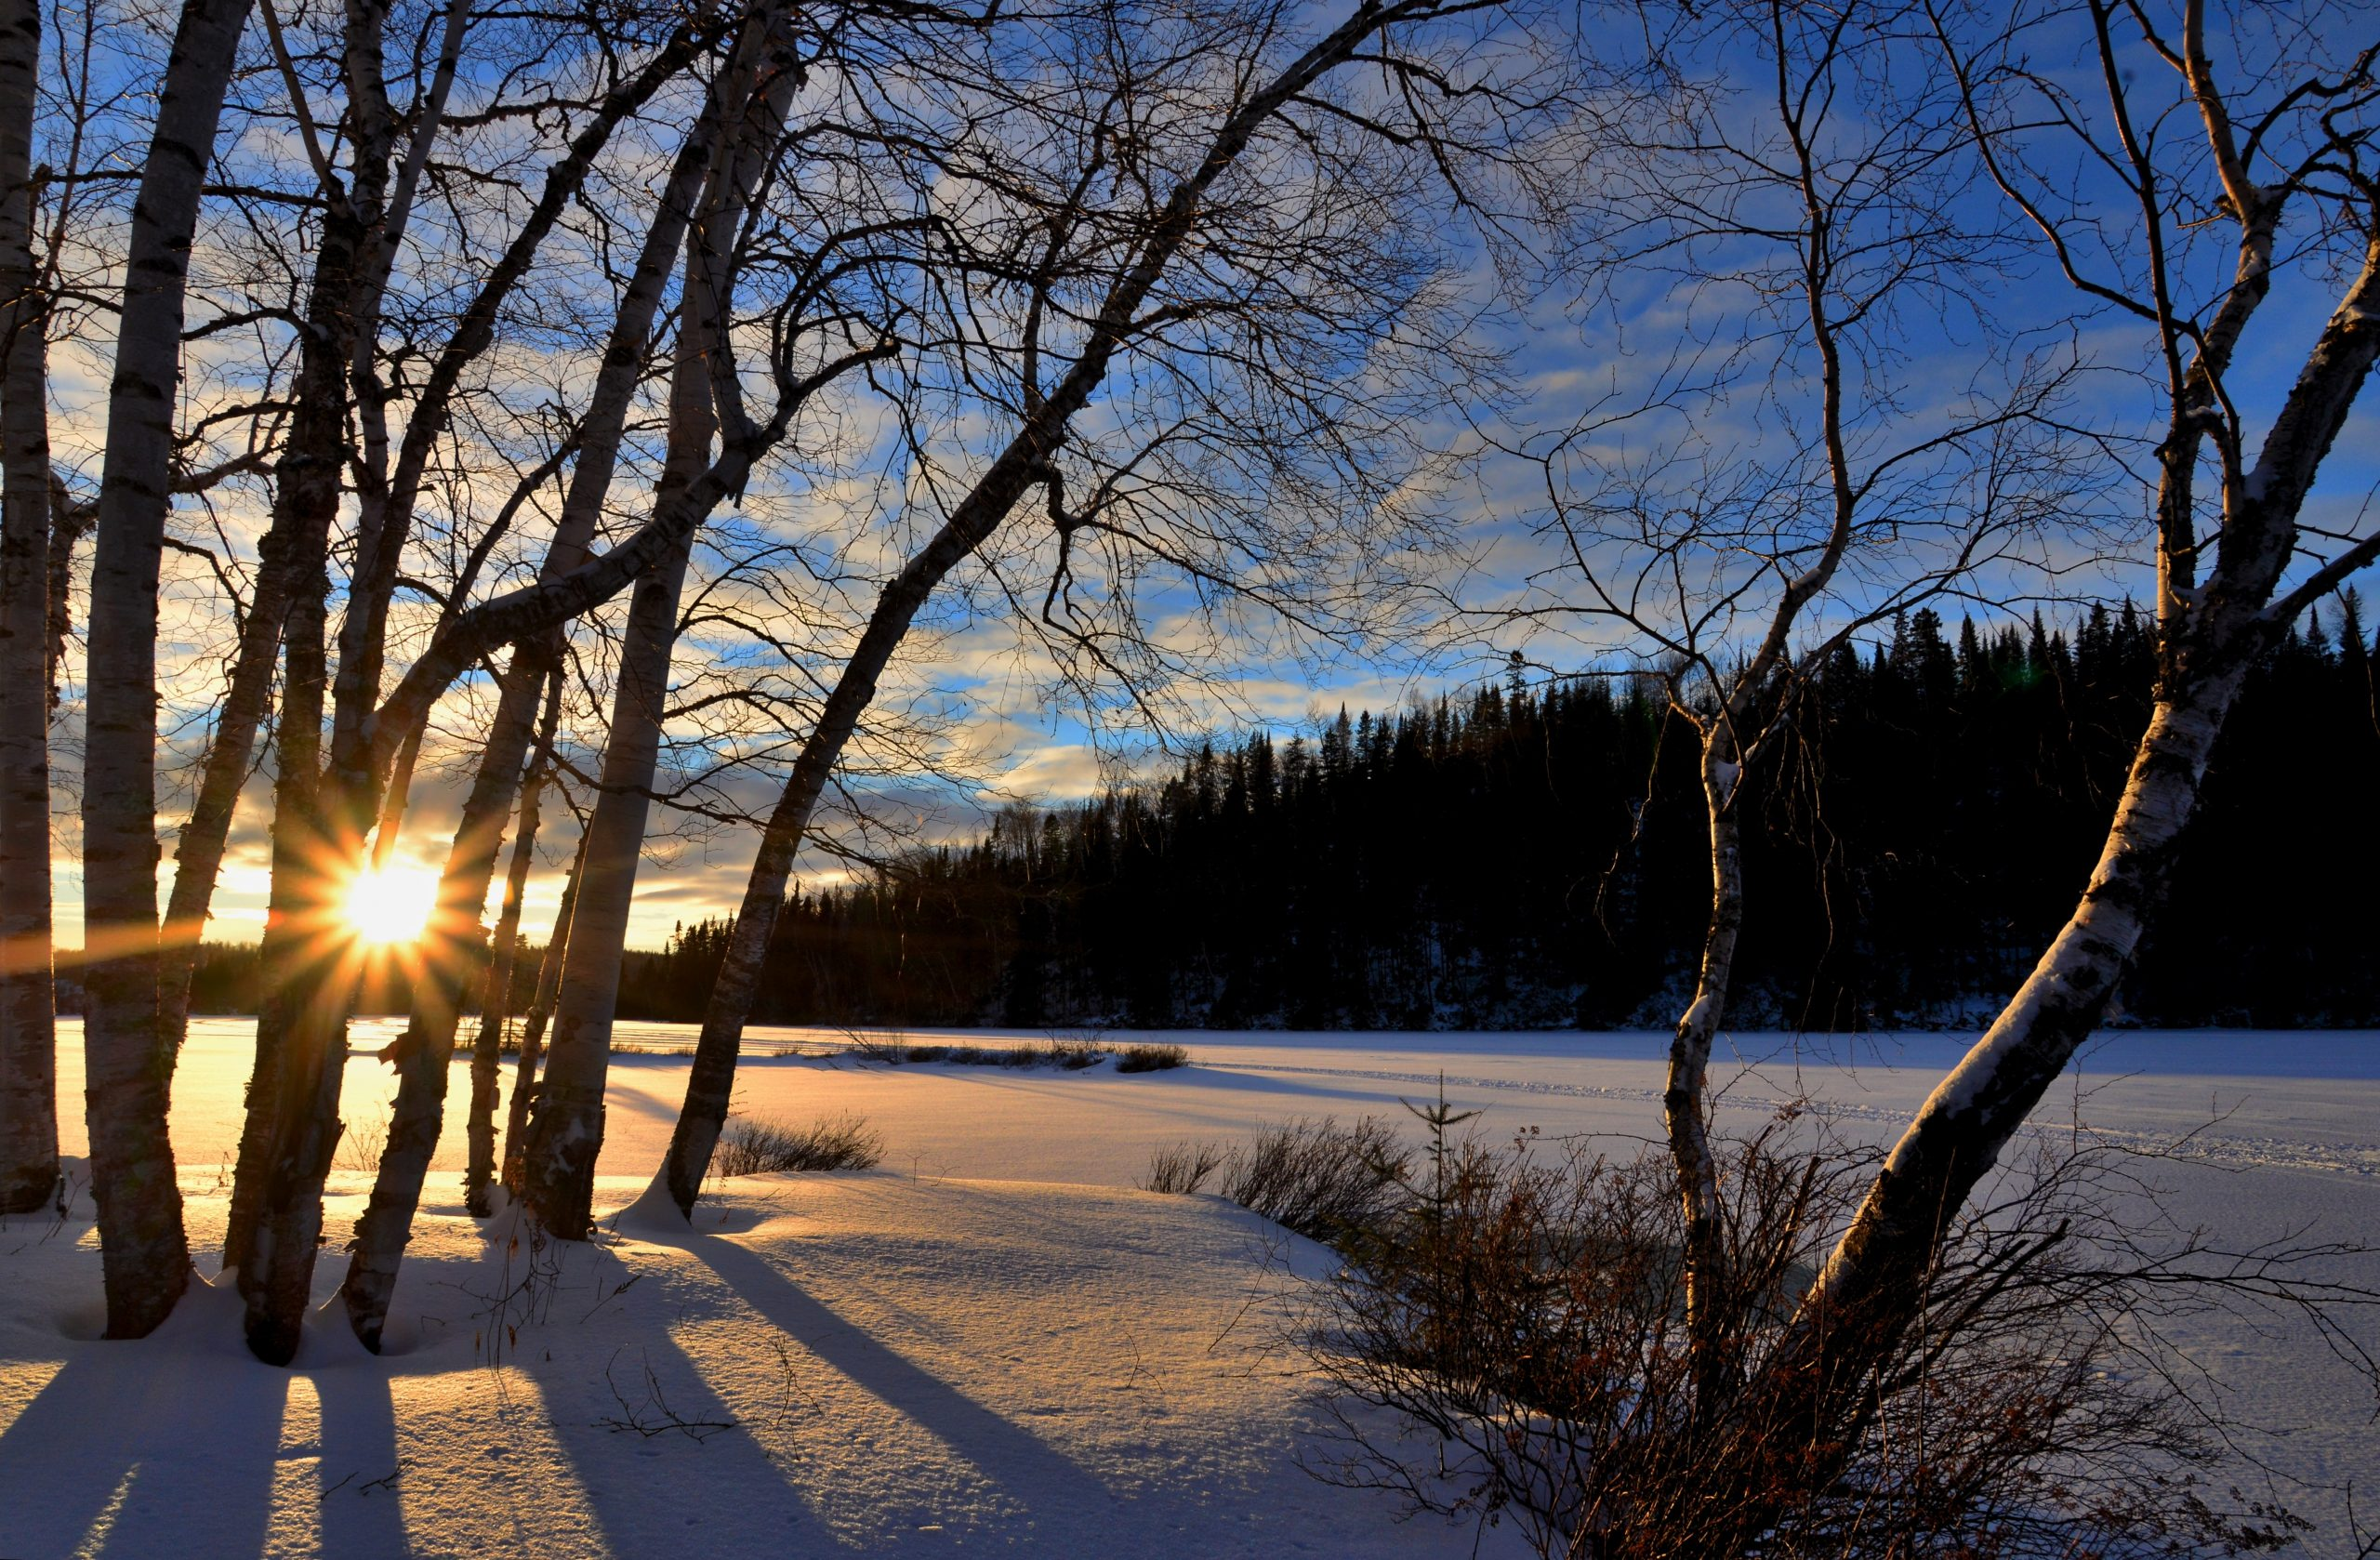 The sun rising over a snowy field surrounded by trees